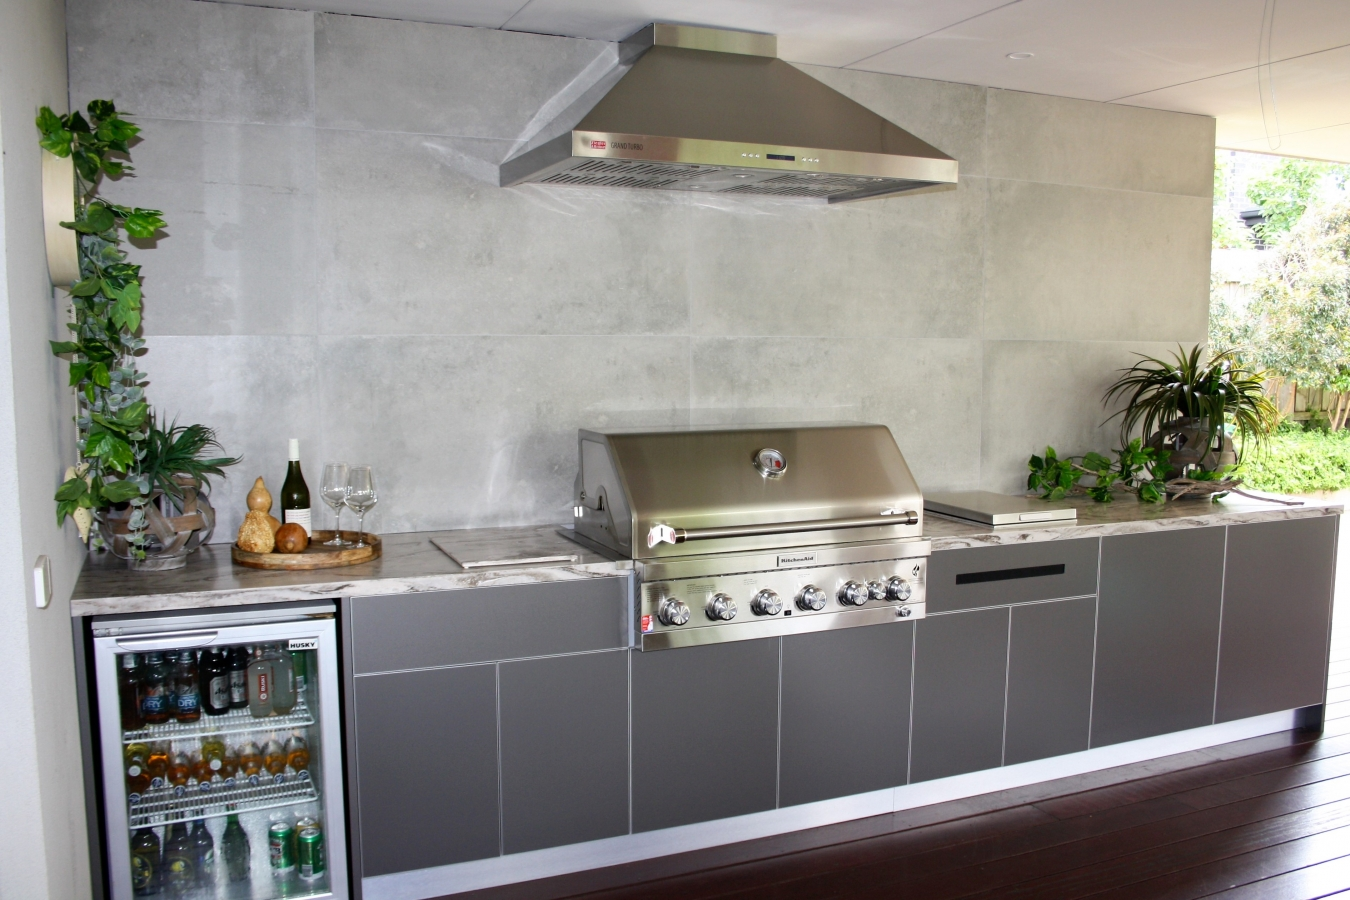 KitchenAid-6-Burner-BBQ-Metallic-Charcoal-Corian-Somkedrift-Prima-Alfresco-Kitchen-1